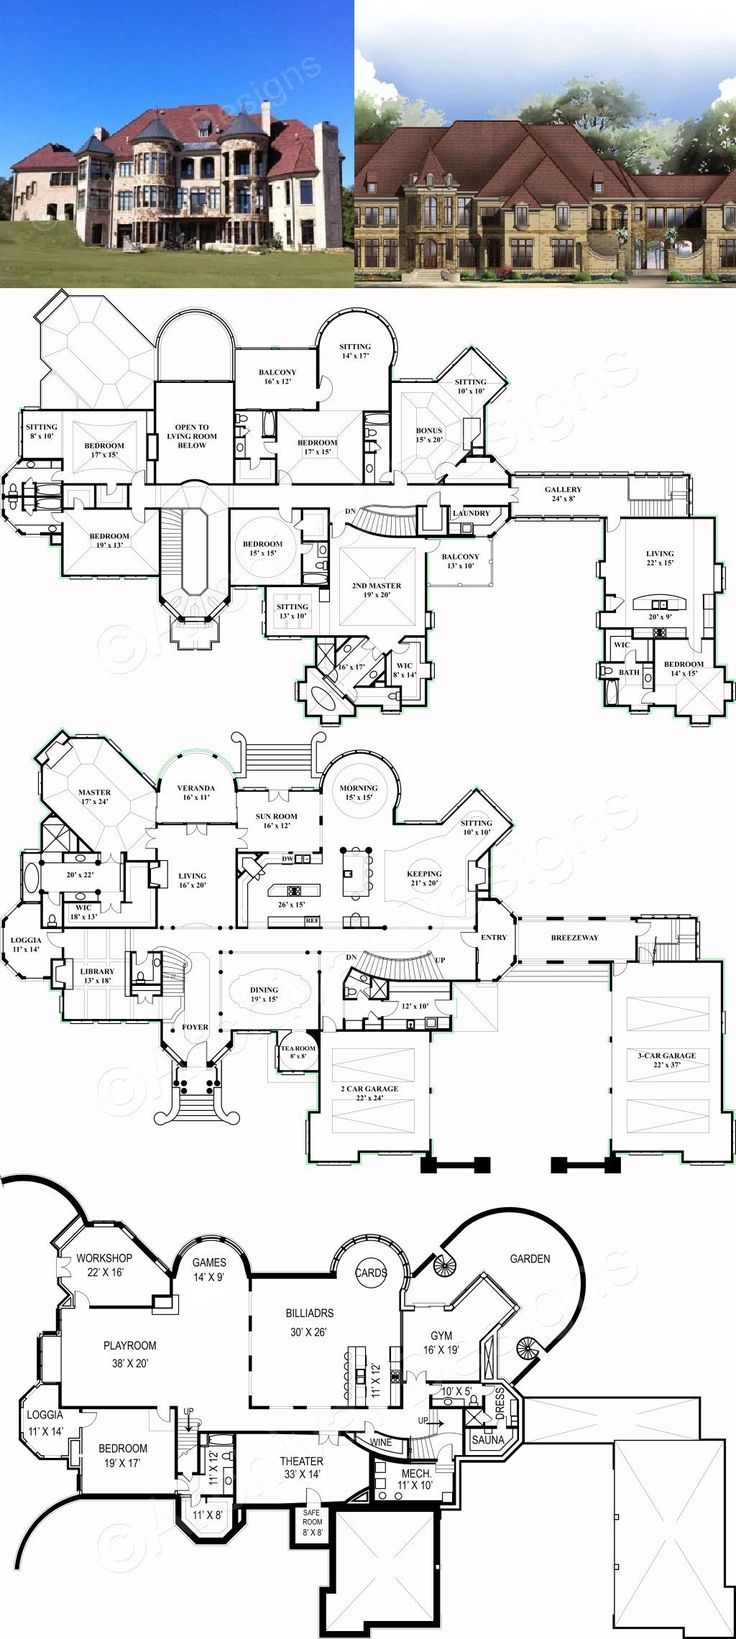 Wohndesign schlafzimmermöbel  best architektur images on pinterest  sims house future house